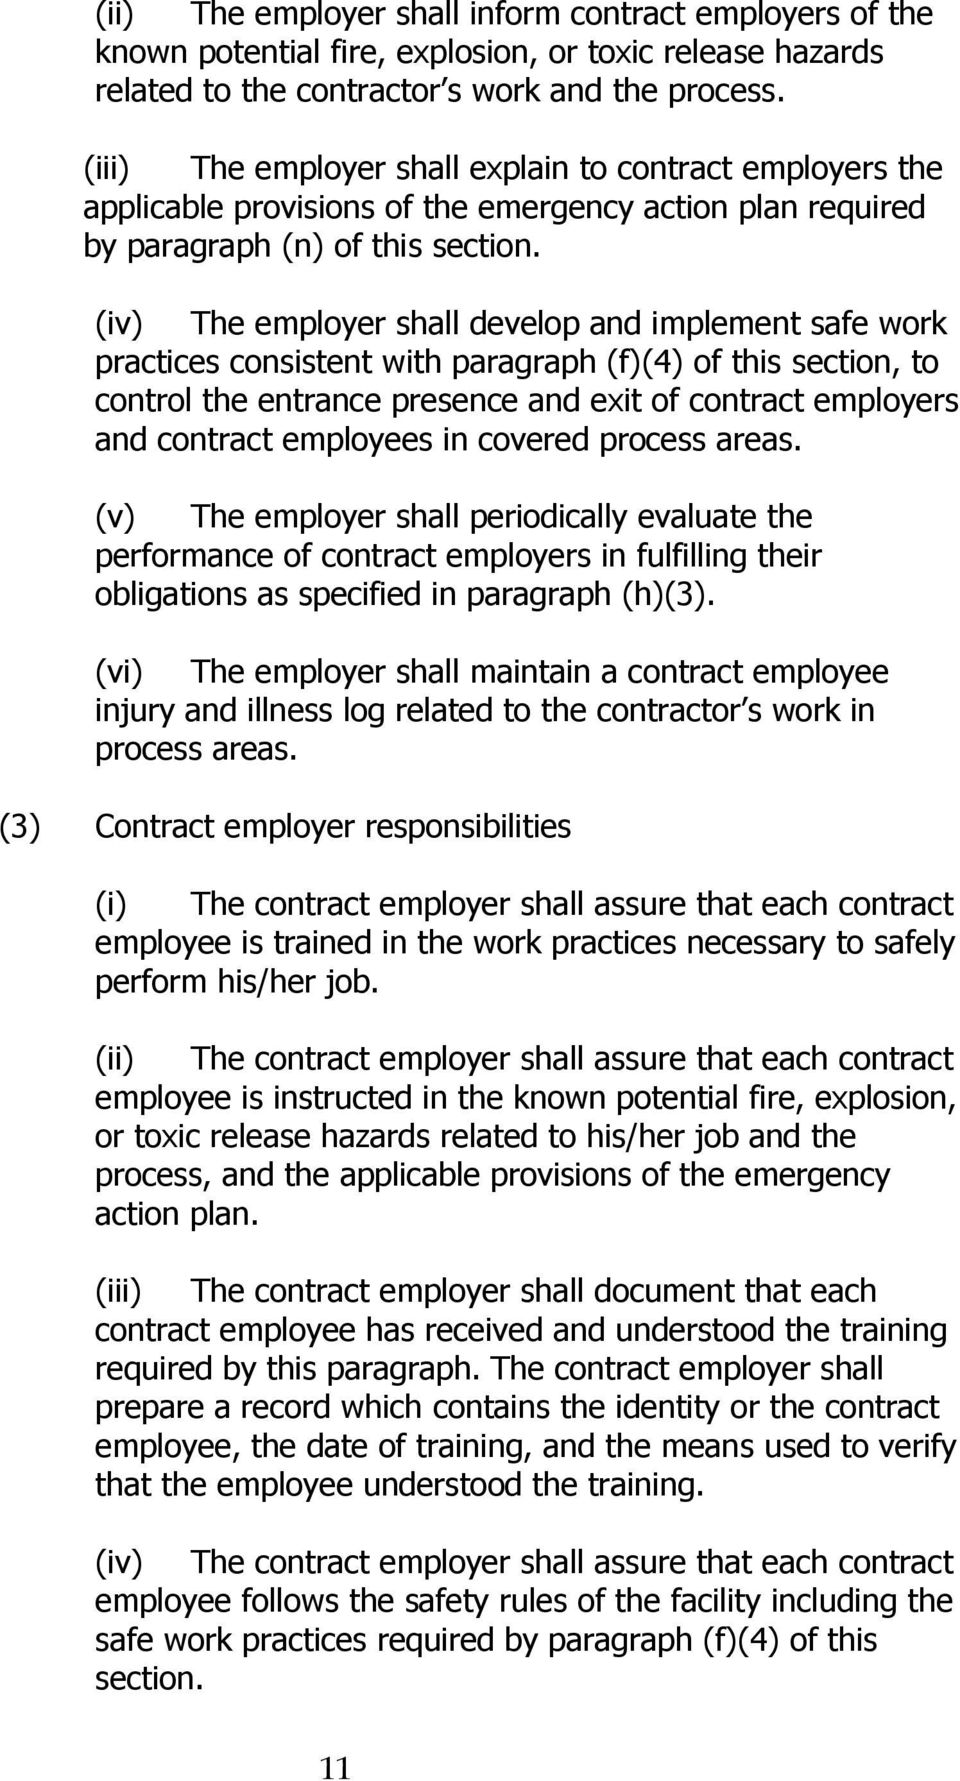 (iv) The employer shall develop and implement safe work practices consistent with paragraph (f)(4) of this section, to control the entrance presence and exit of contract employers and contract